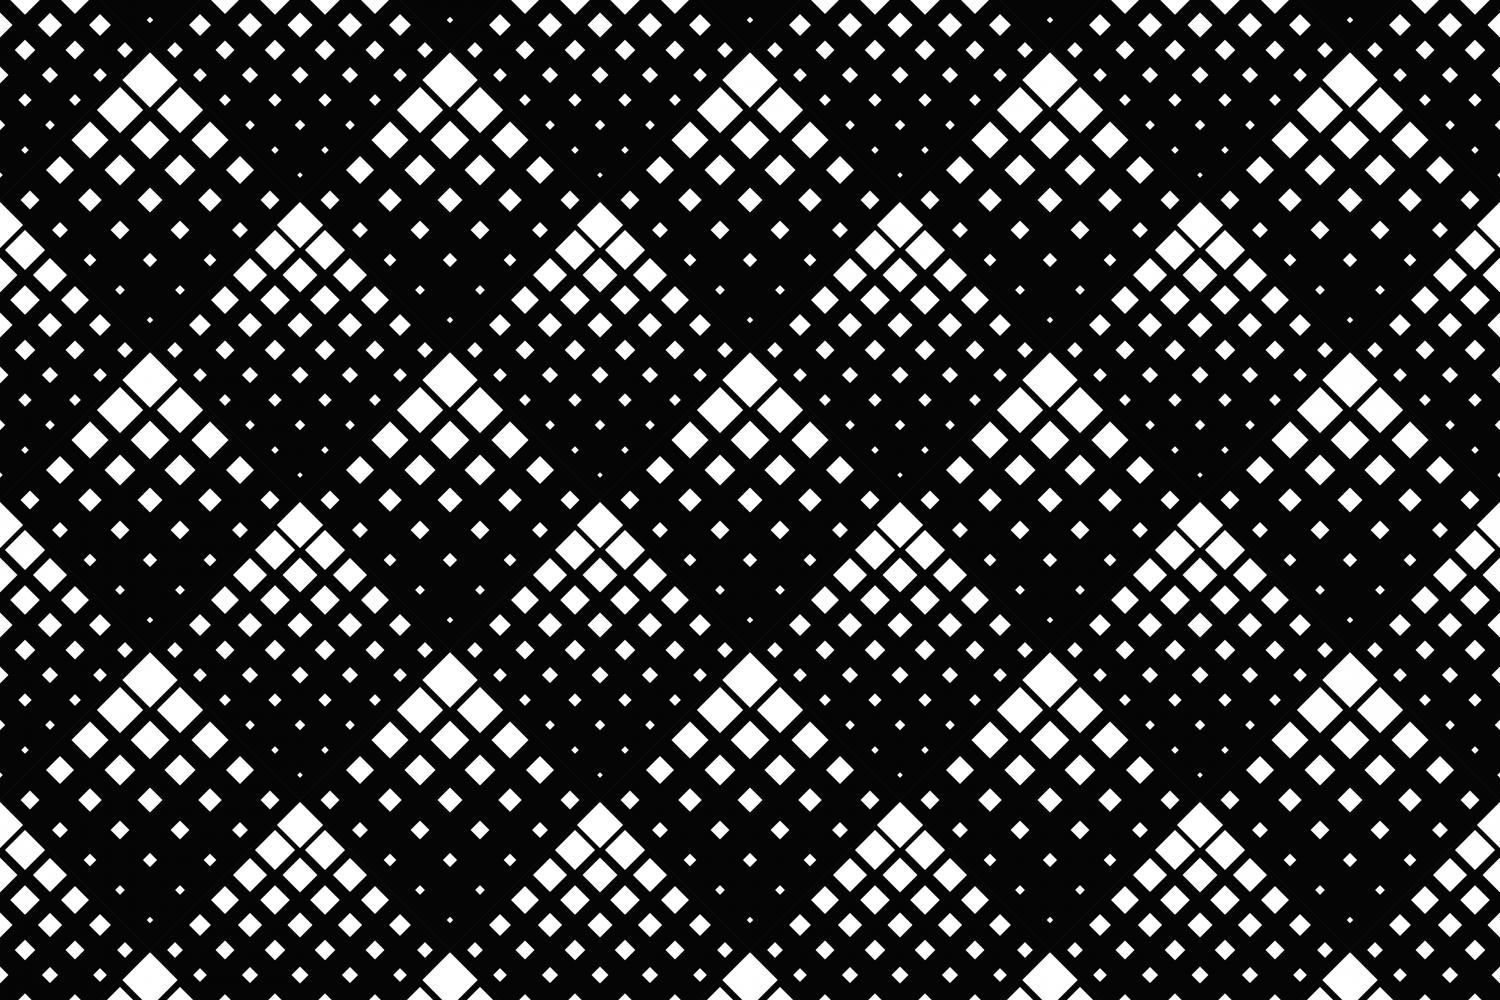 24 Seamless Square Patterns example image 13